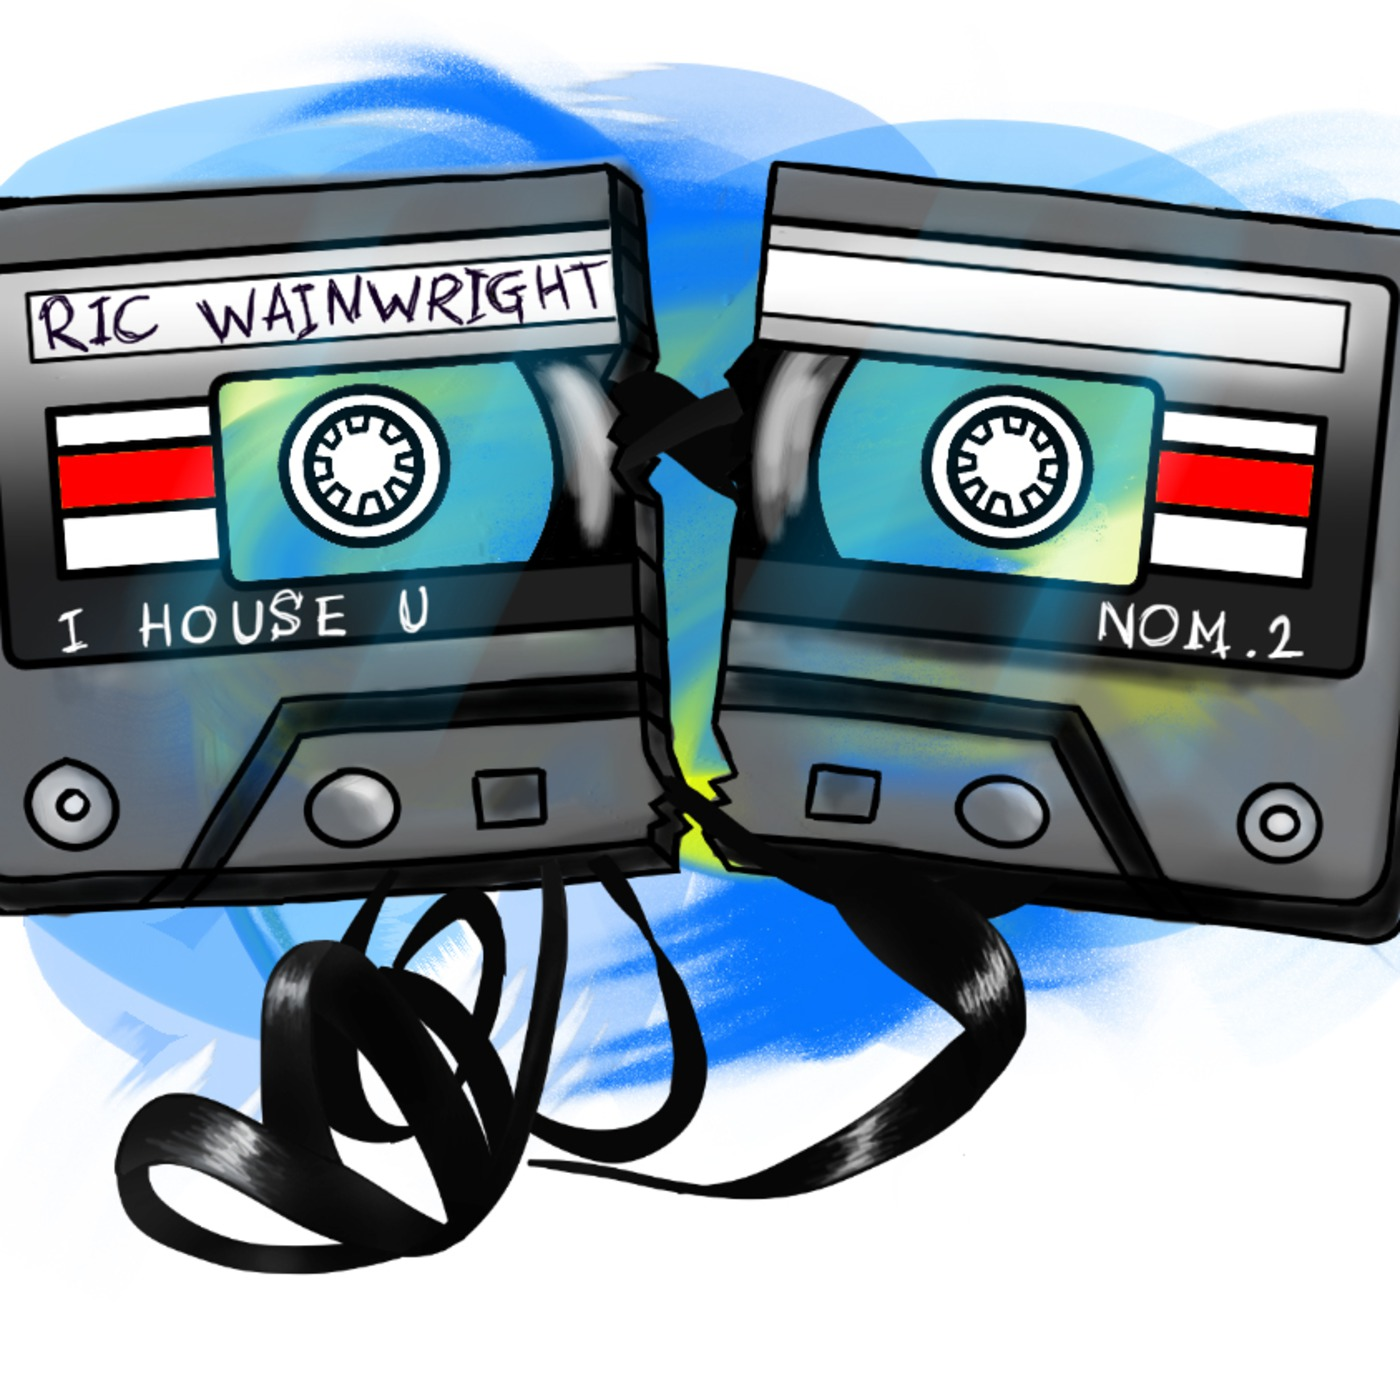 IHOUSEU podcast Mixed By Ric Wainwright